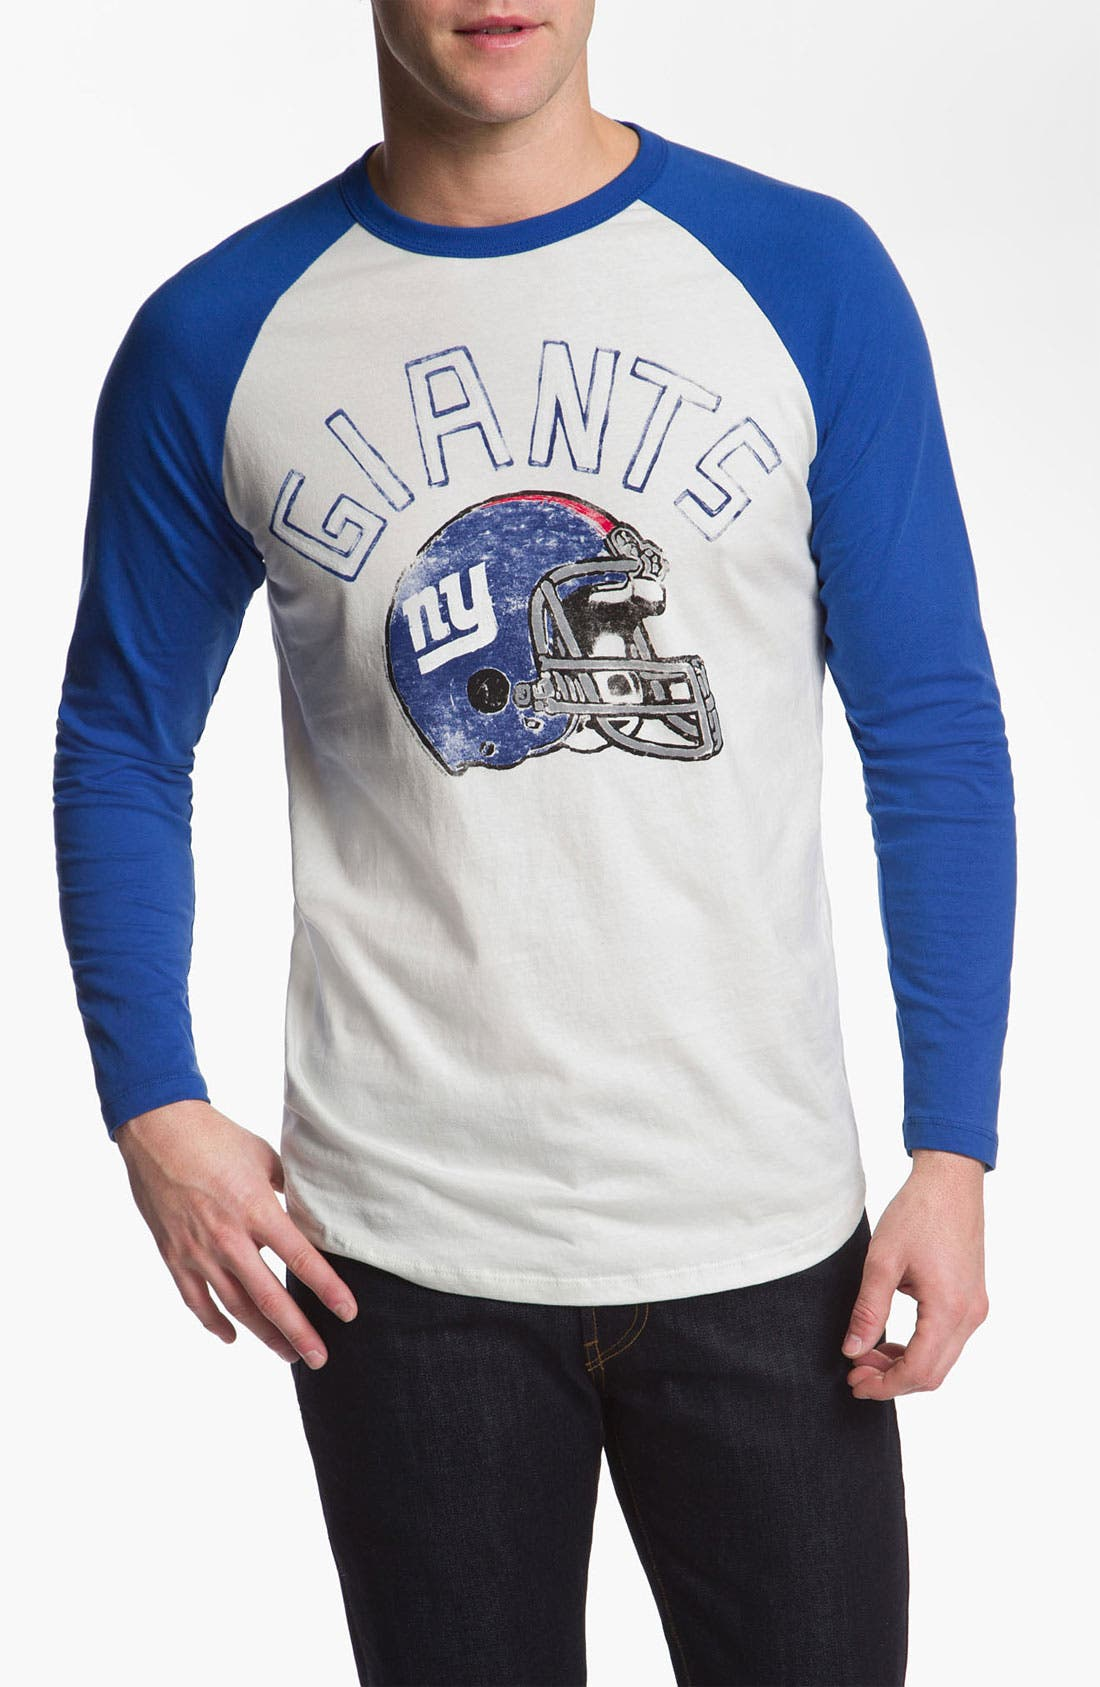 Alternate Image 1 Selected - Junk Food 'New York Giants' Raglan Sleeve T-Shirt